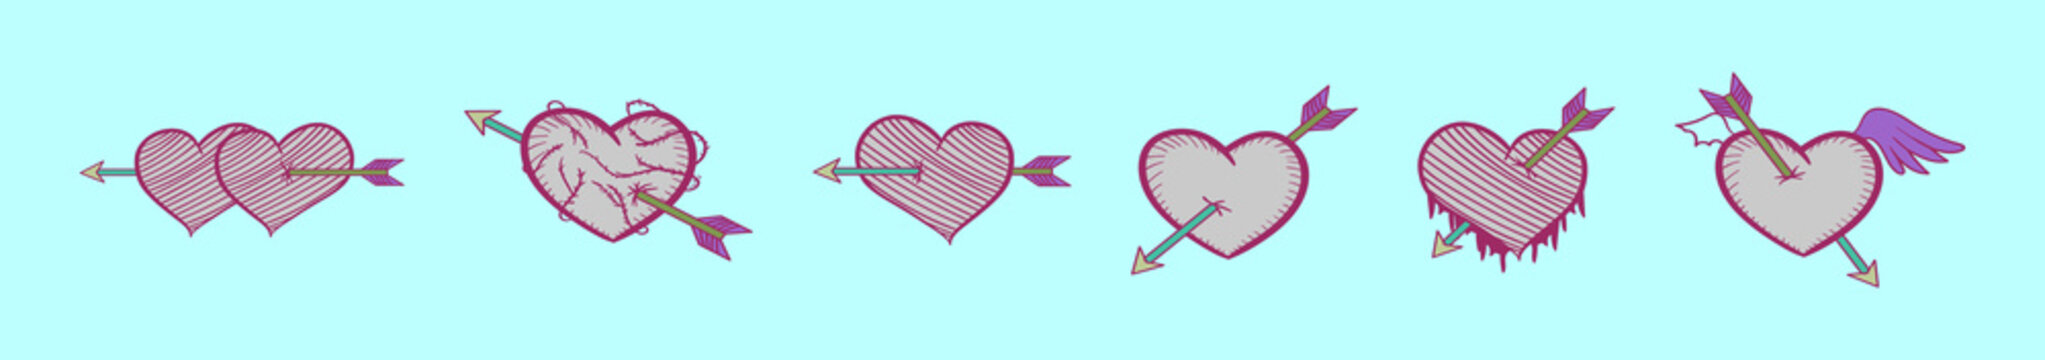 set of arrow through heart cartoon icon design template with various models. vector illustration isolated on blue background